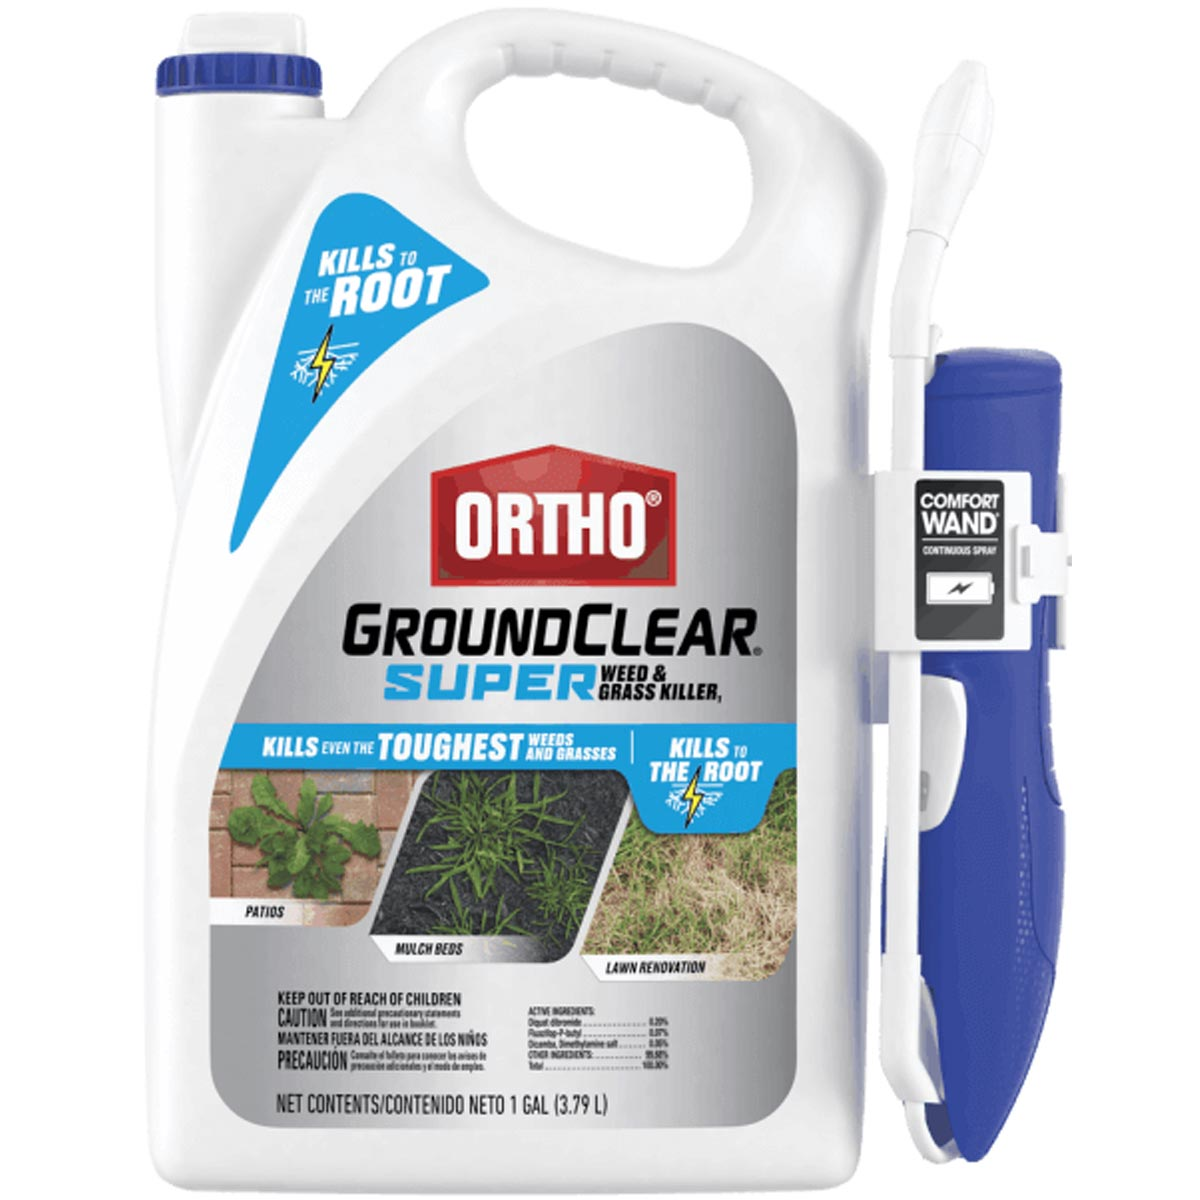 Ortho GroundClear Super Weed & Grass Killer1, 1 Gallon Ready-to-Use with Spray Wand